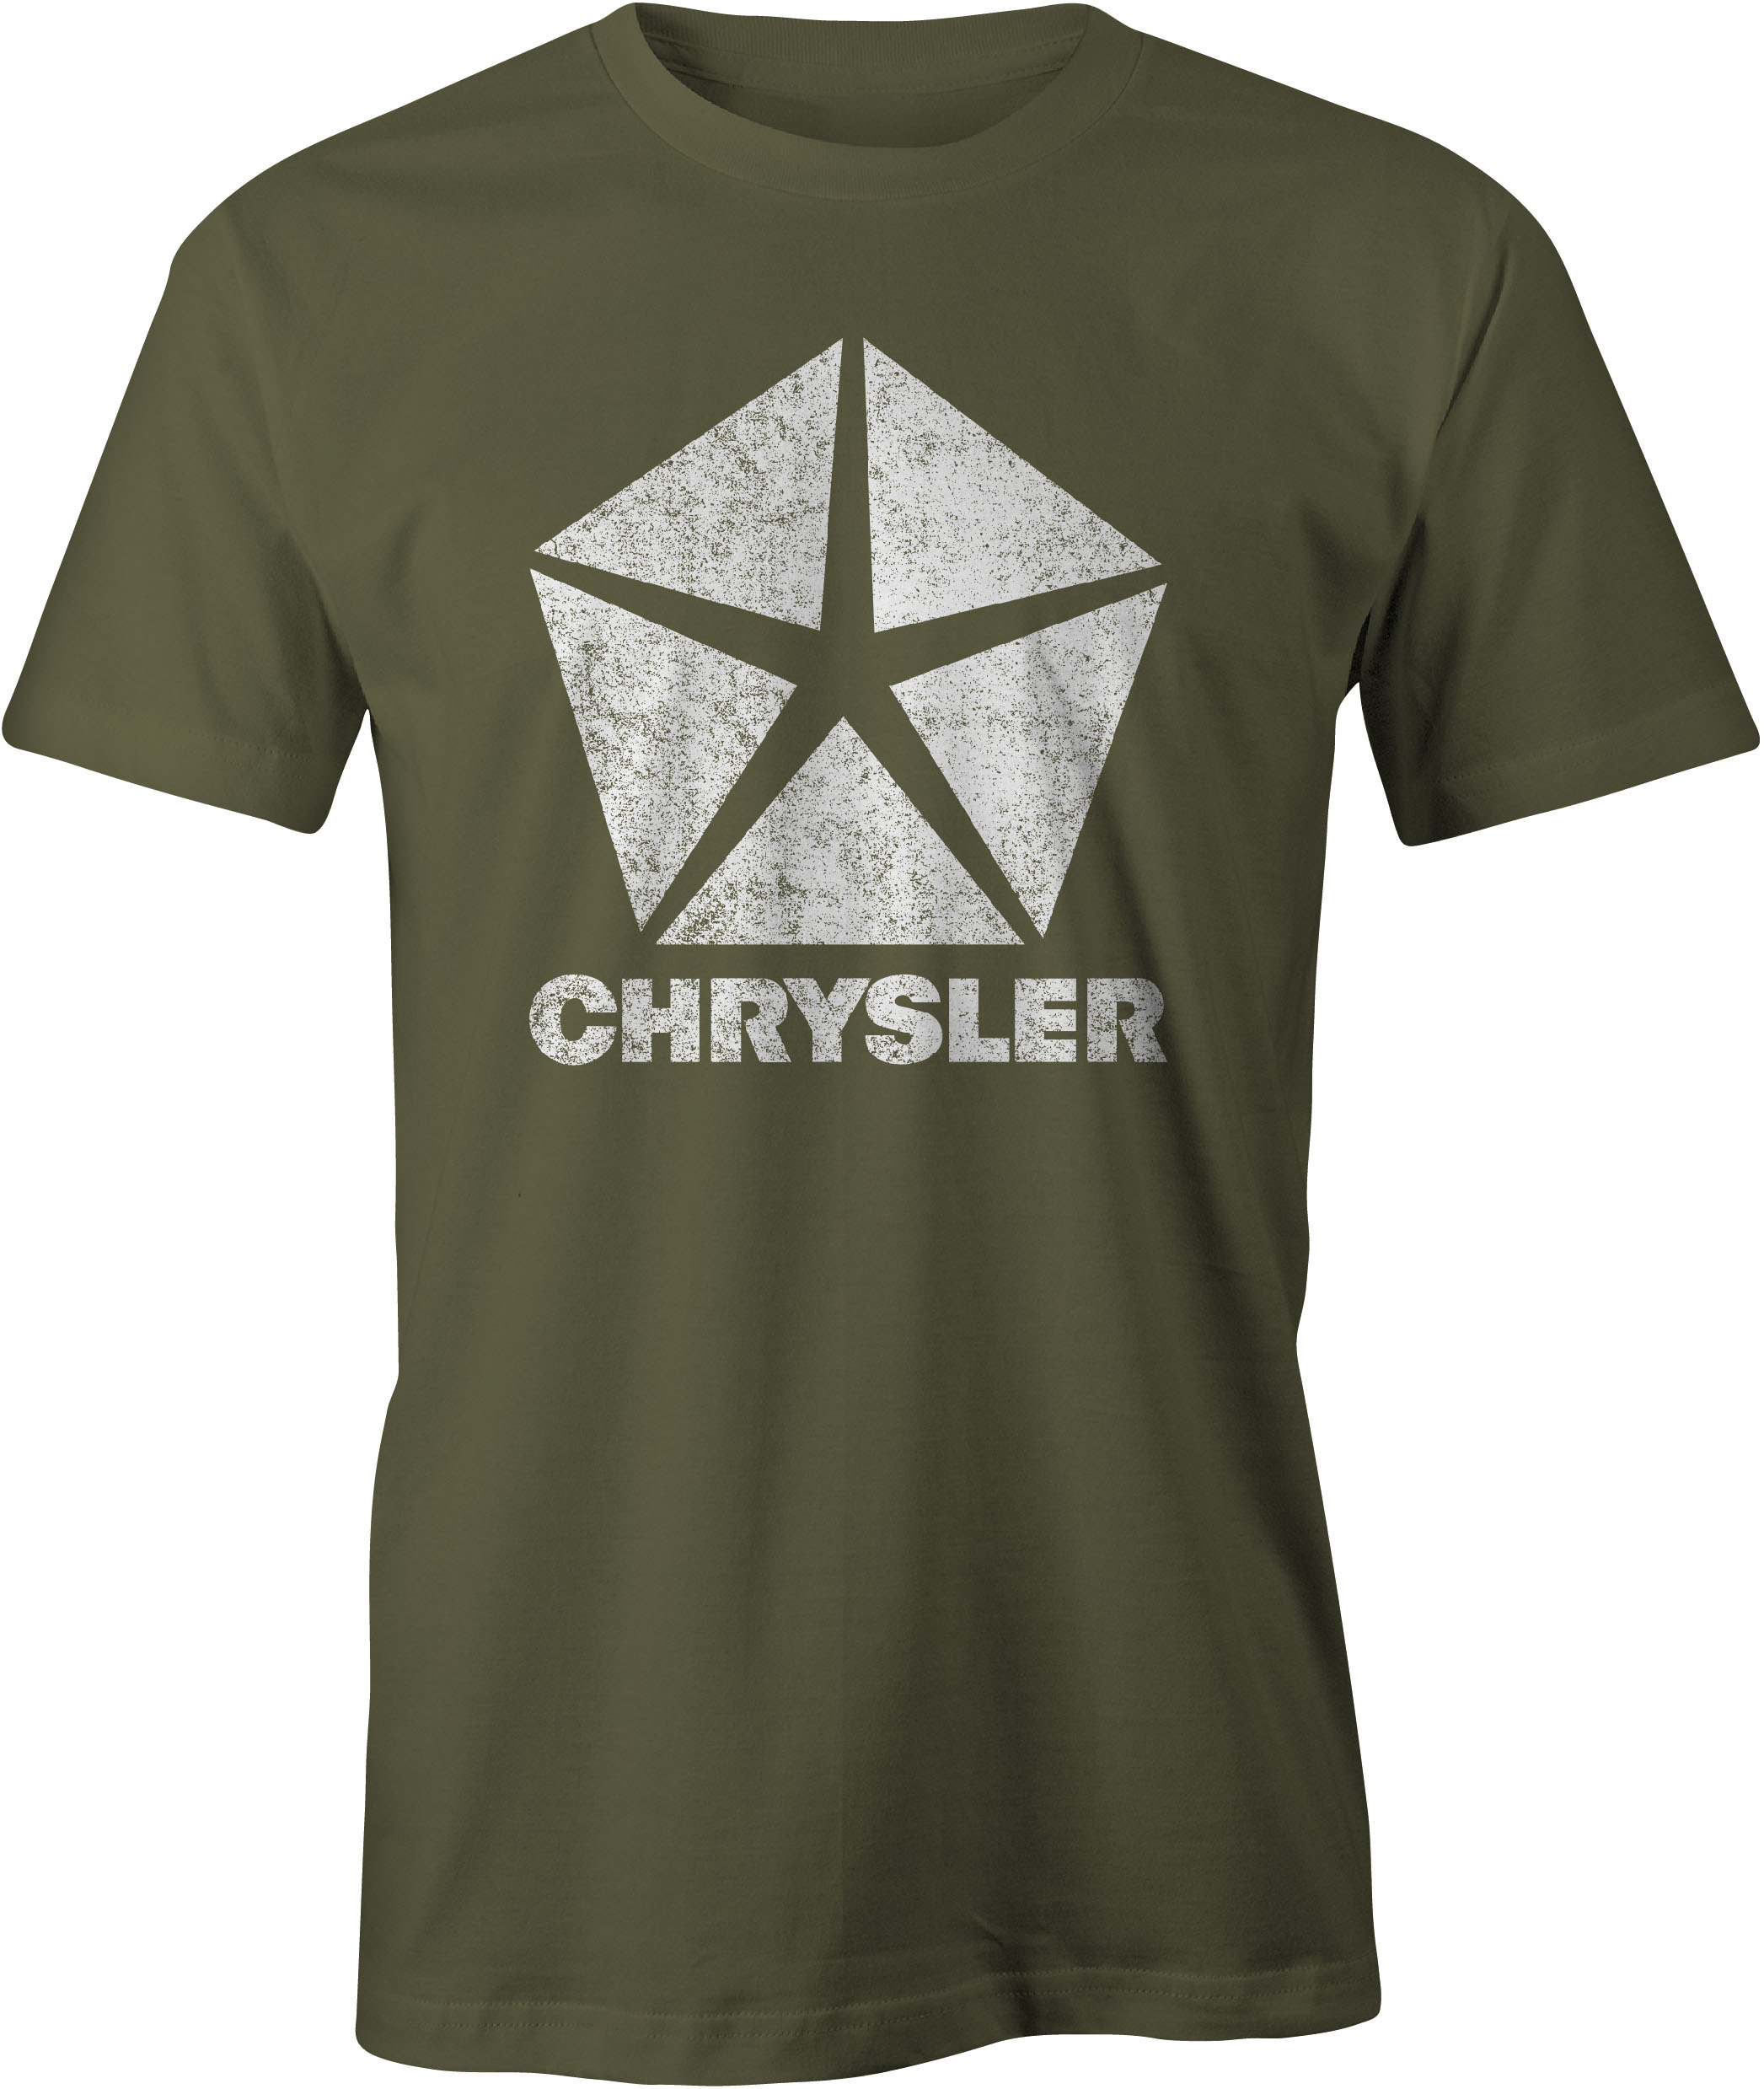 Chrysler Pentastar Logo T Shirt Military Green